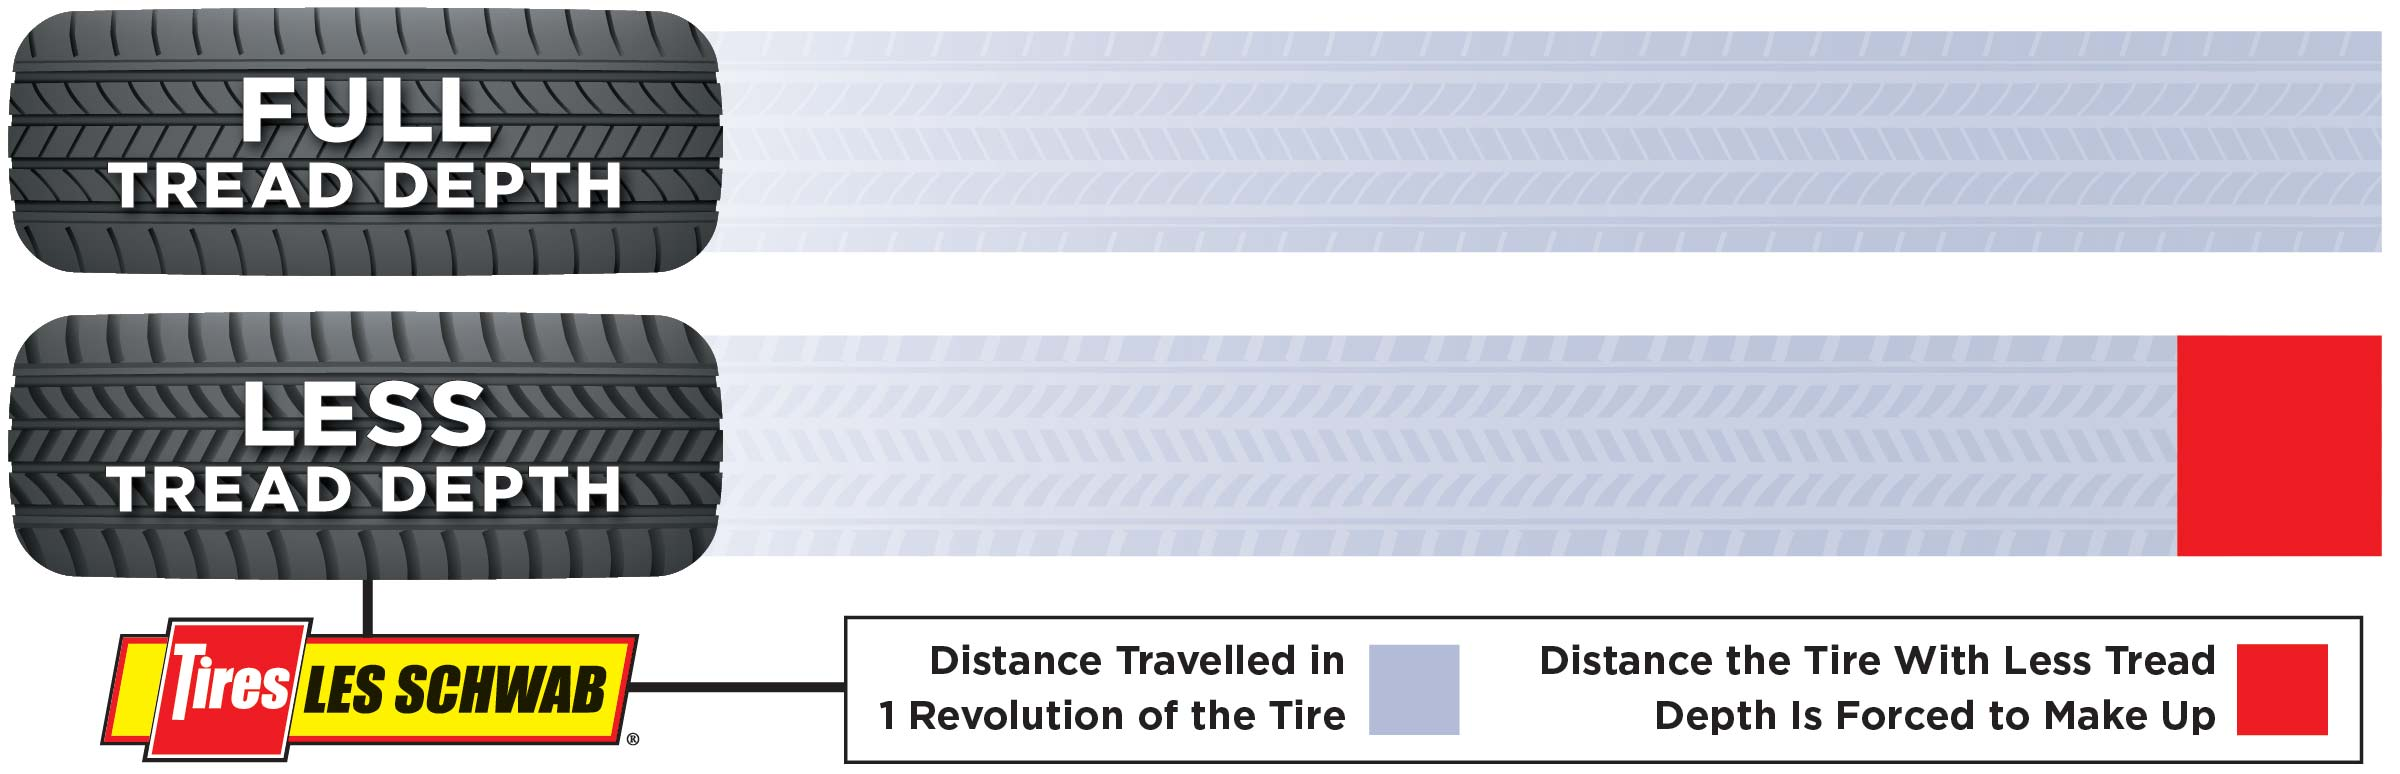 Tires with less tread depth will revolve more times per mile than tires with more tread depth.